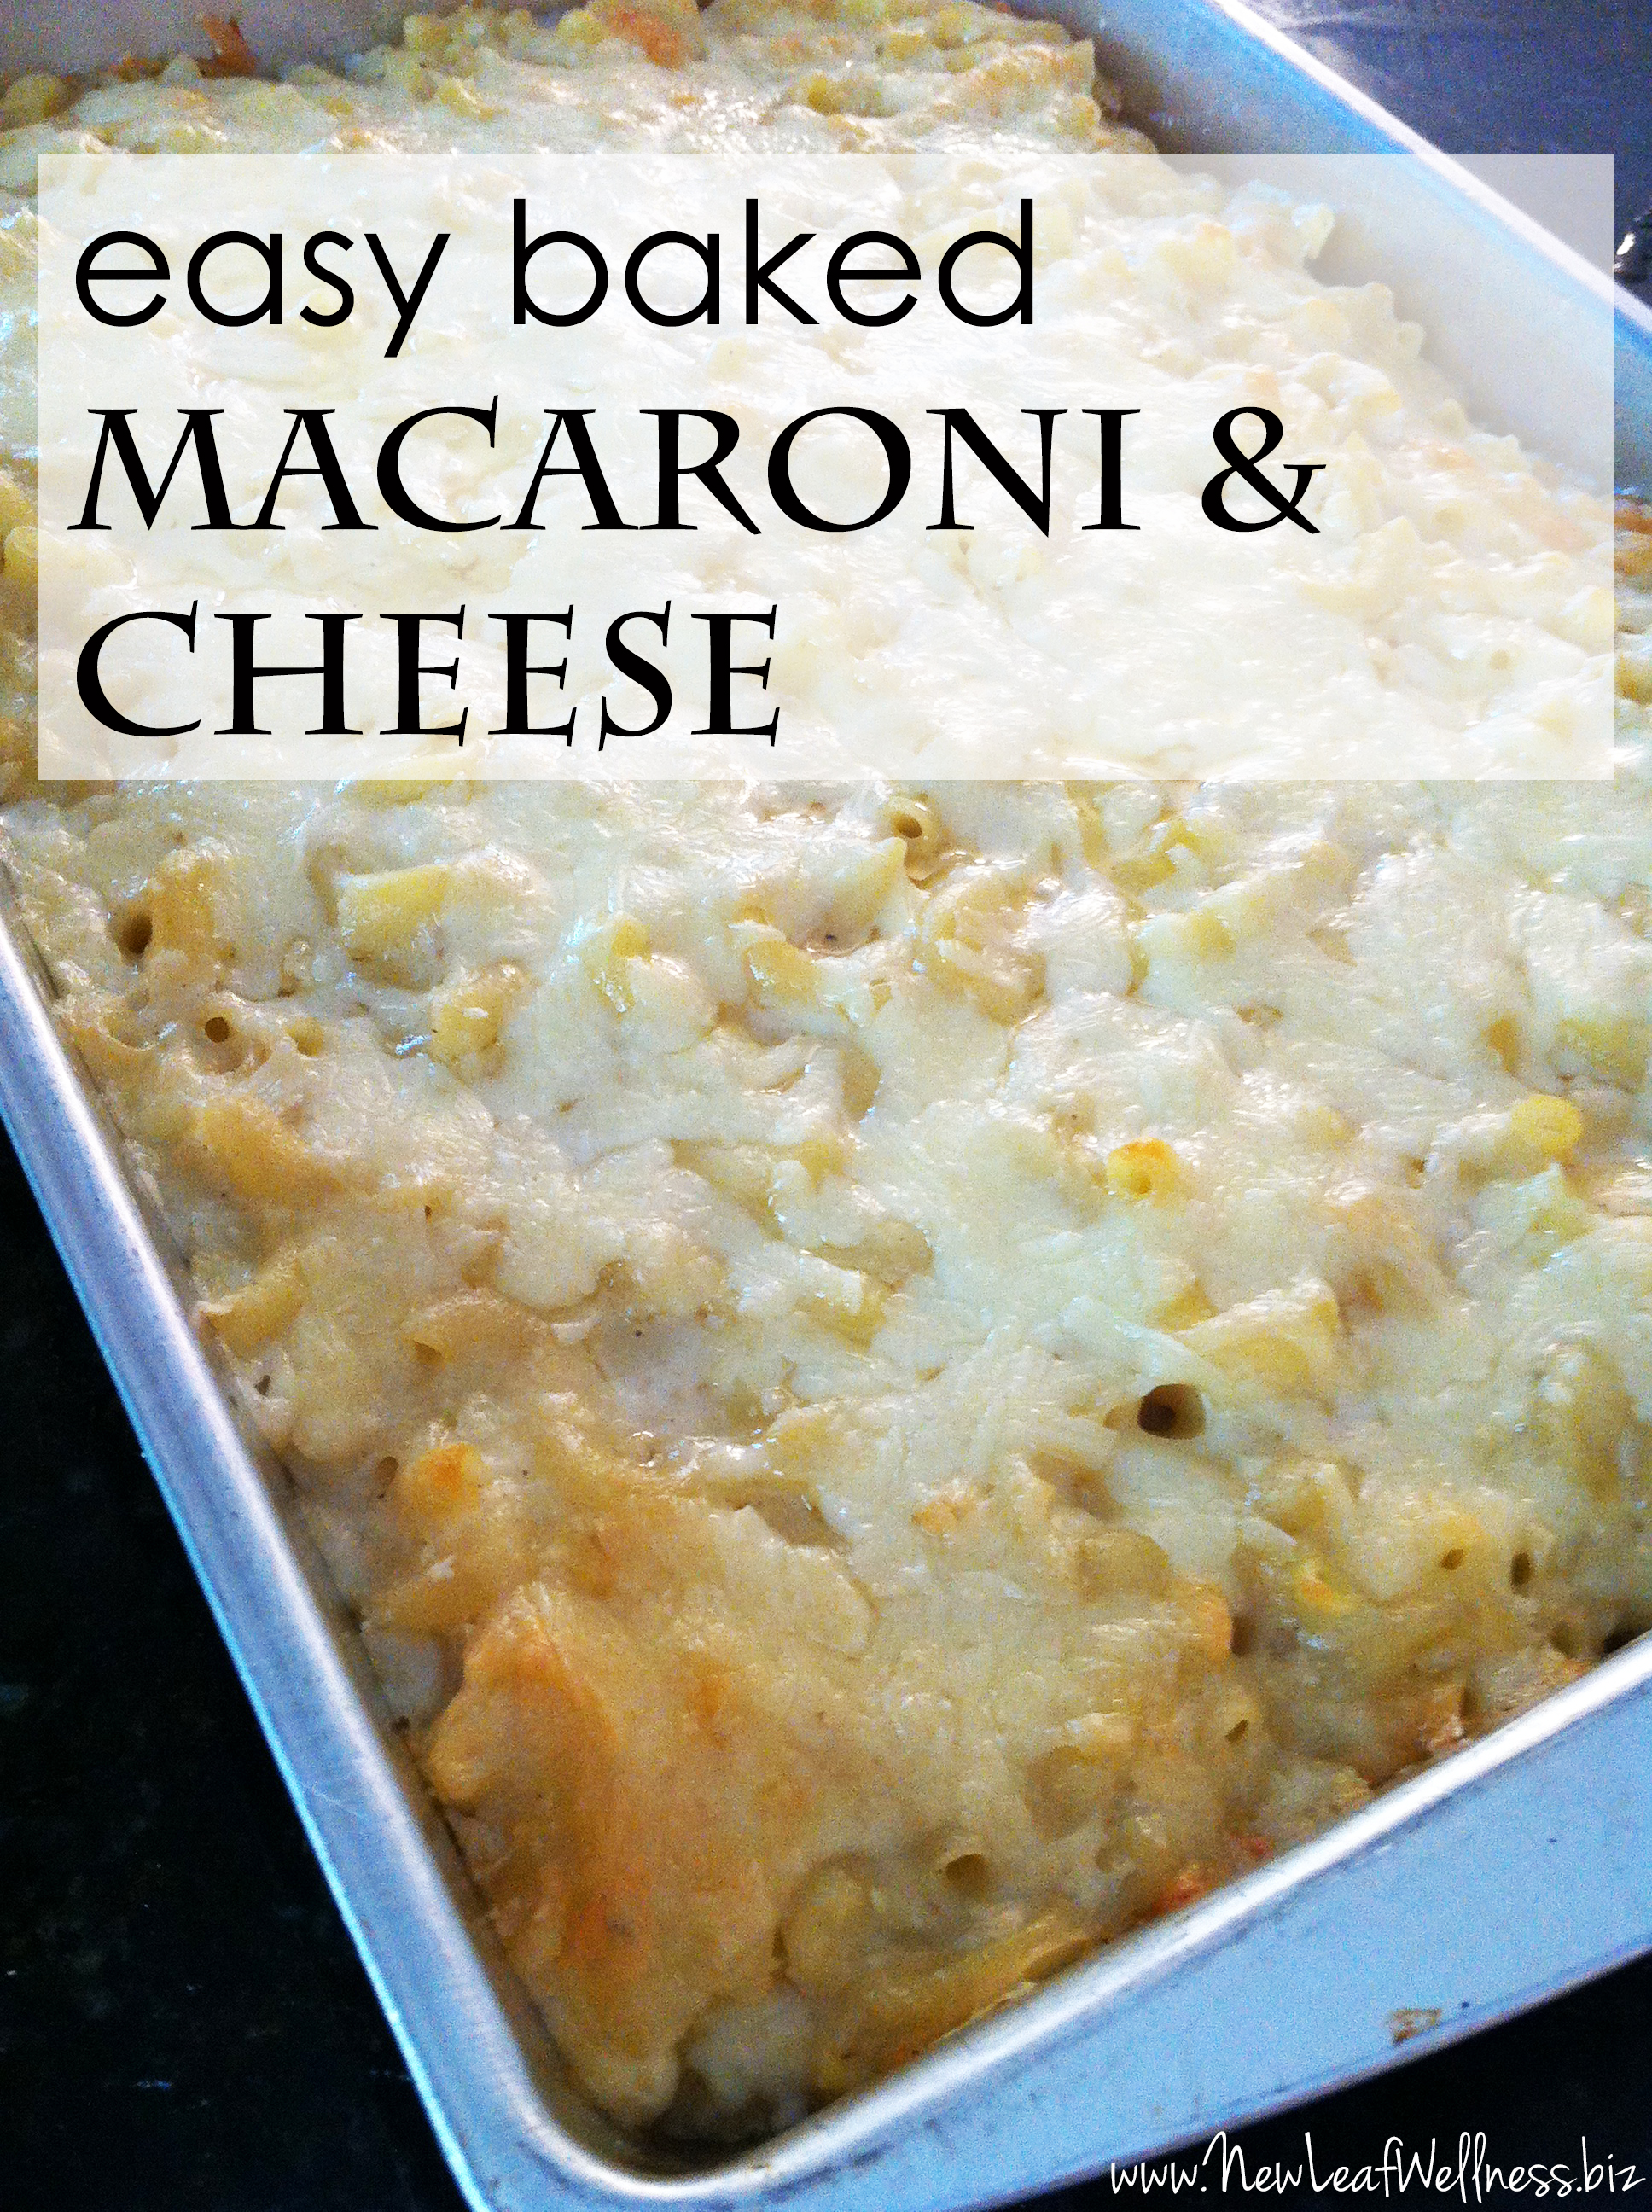 How long to cook macaroni and cheese in oven